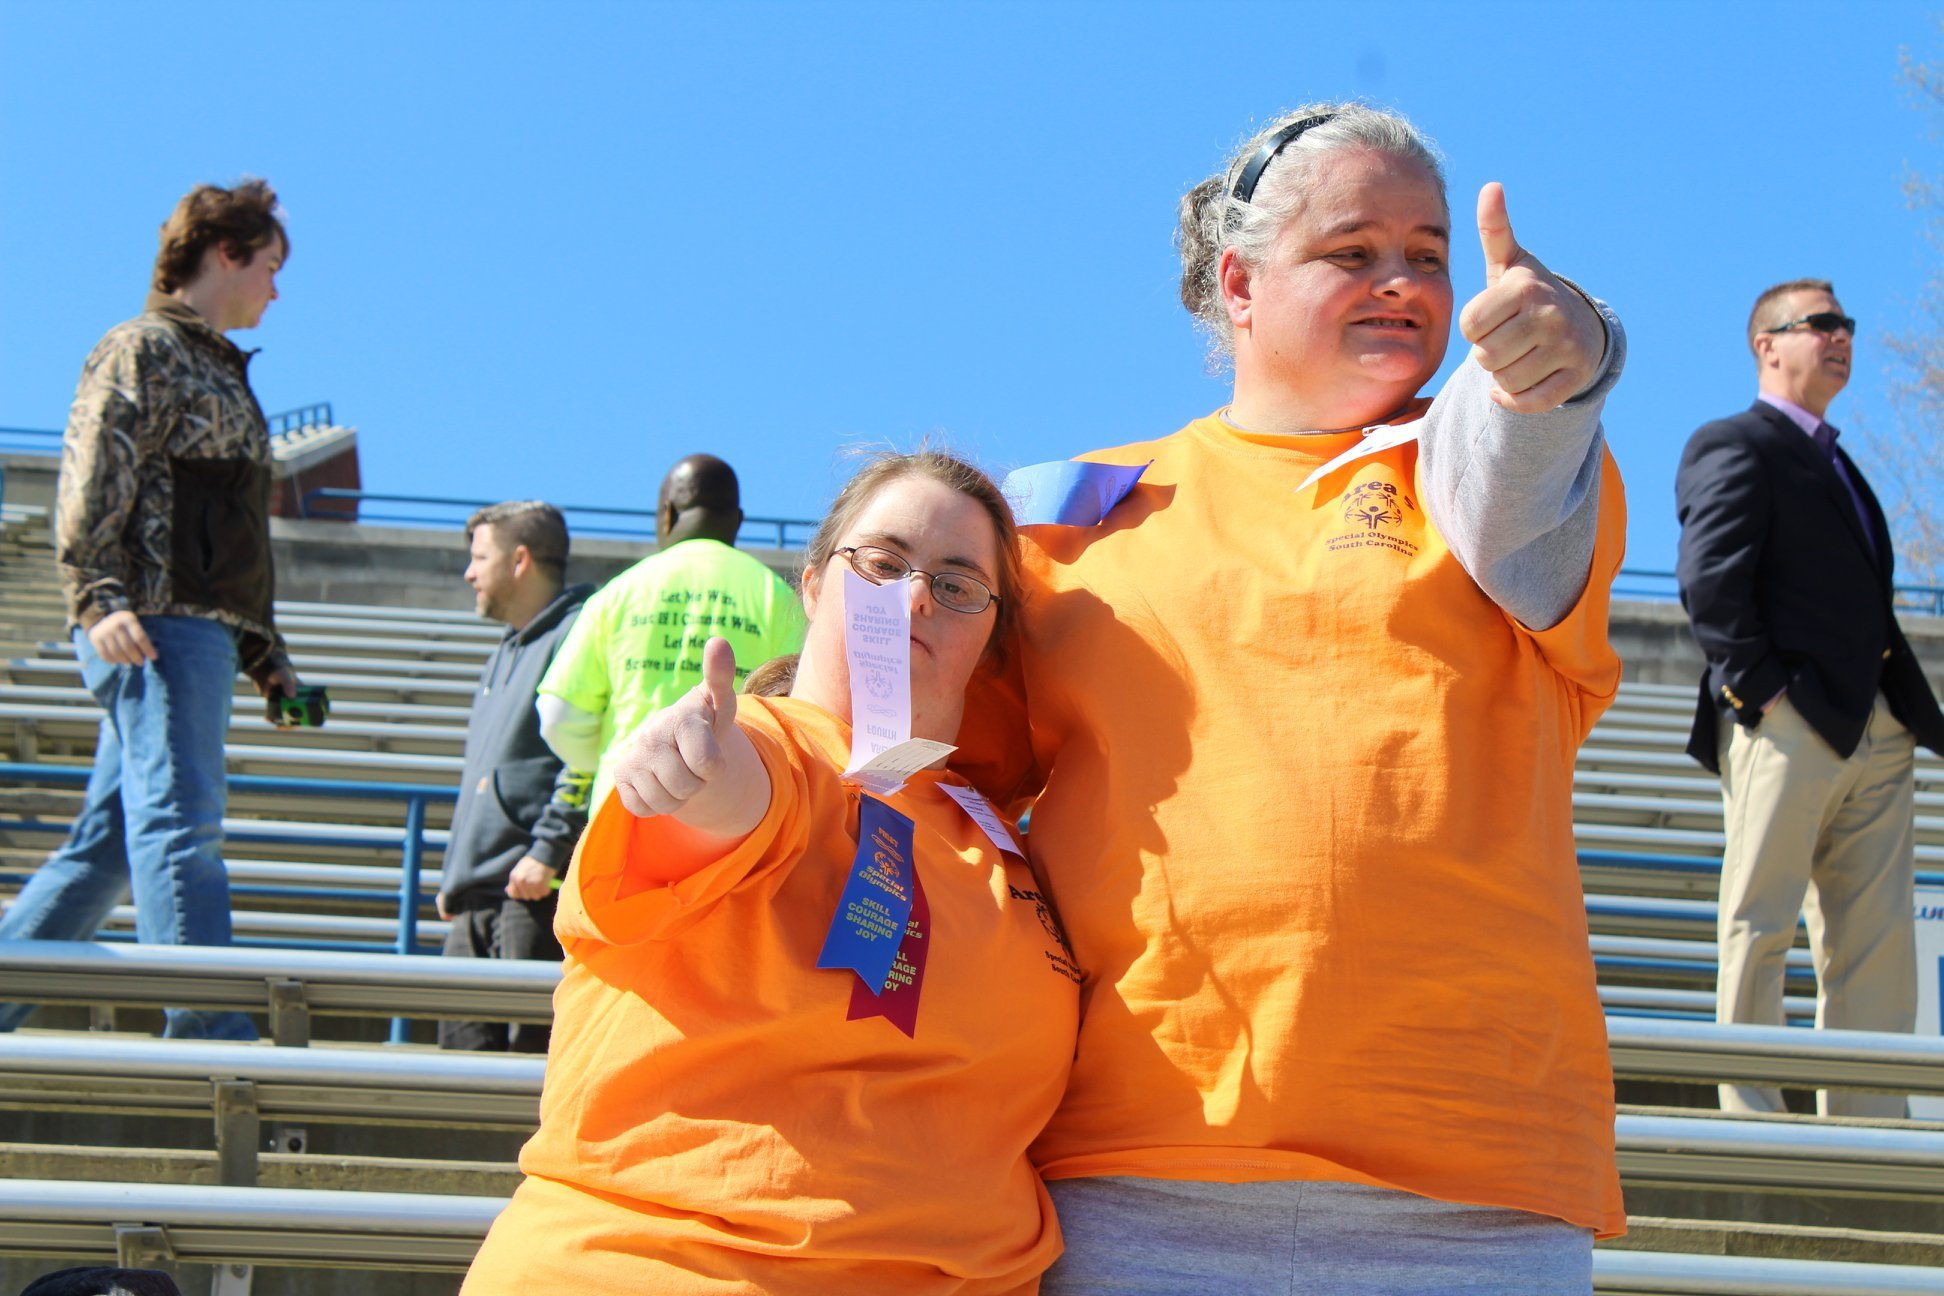 Special Olympics 2018 - Thumbs up!